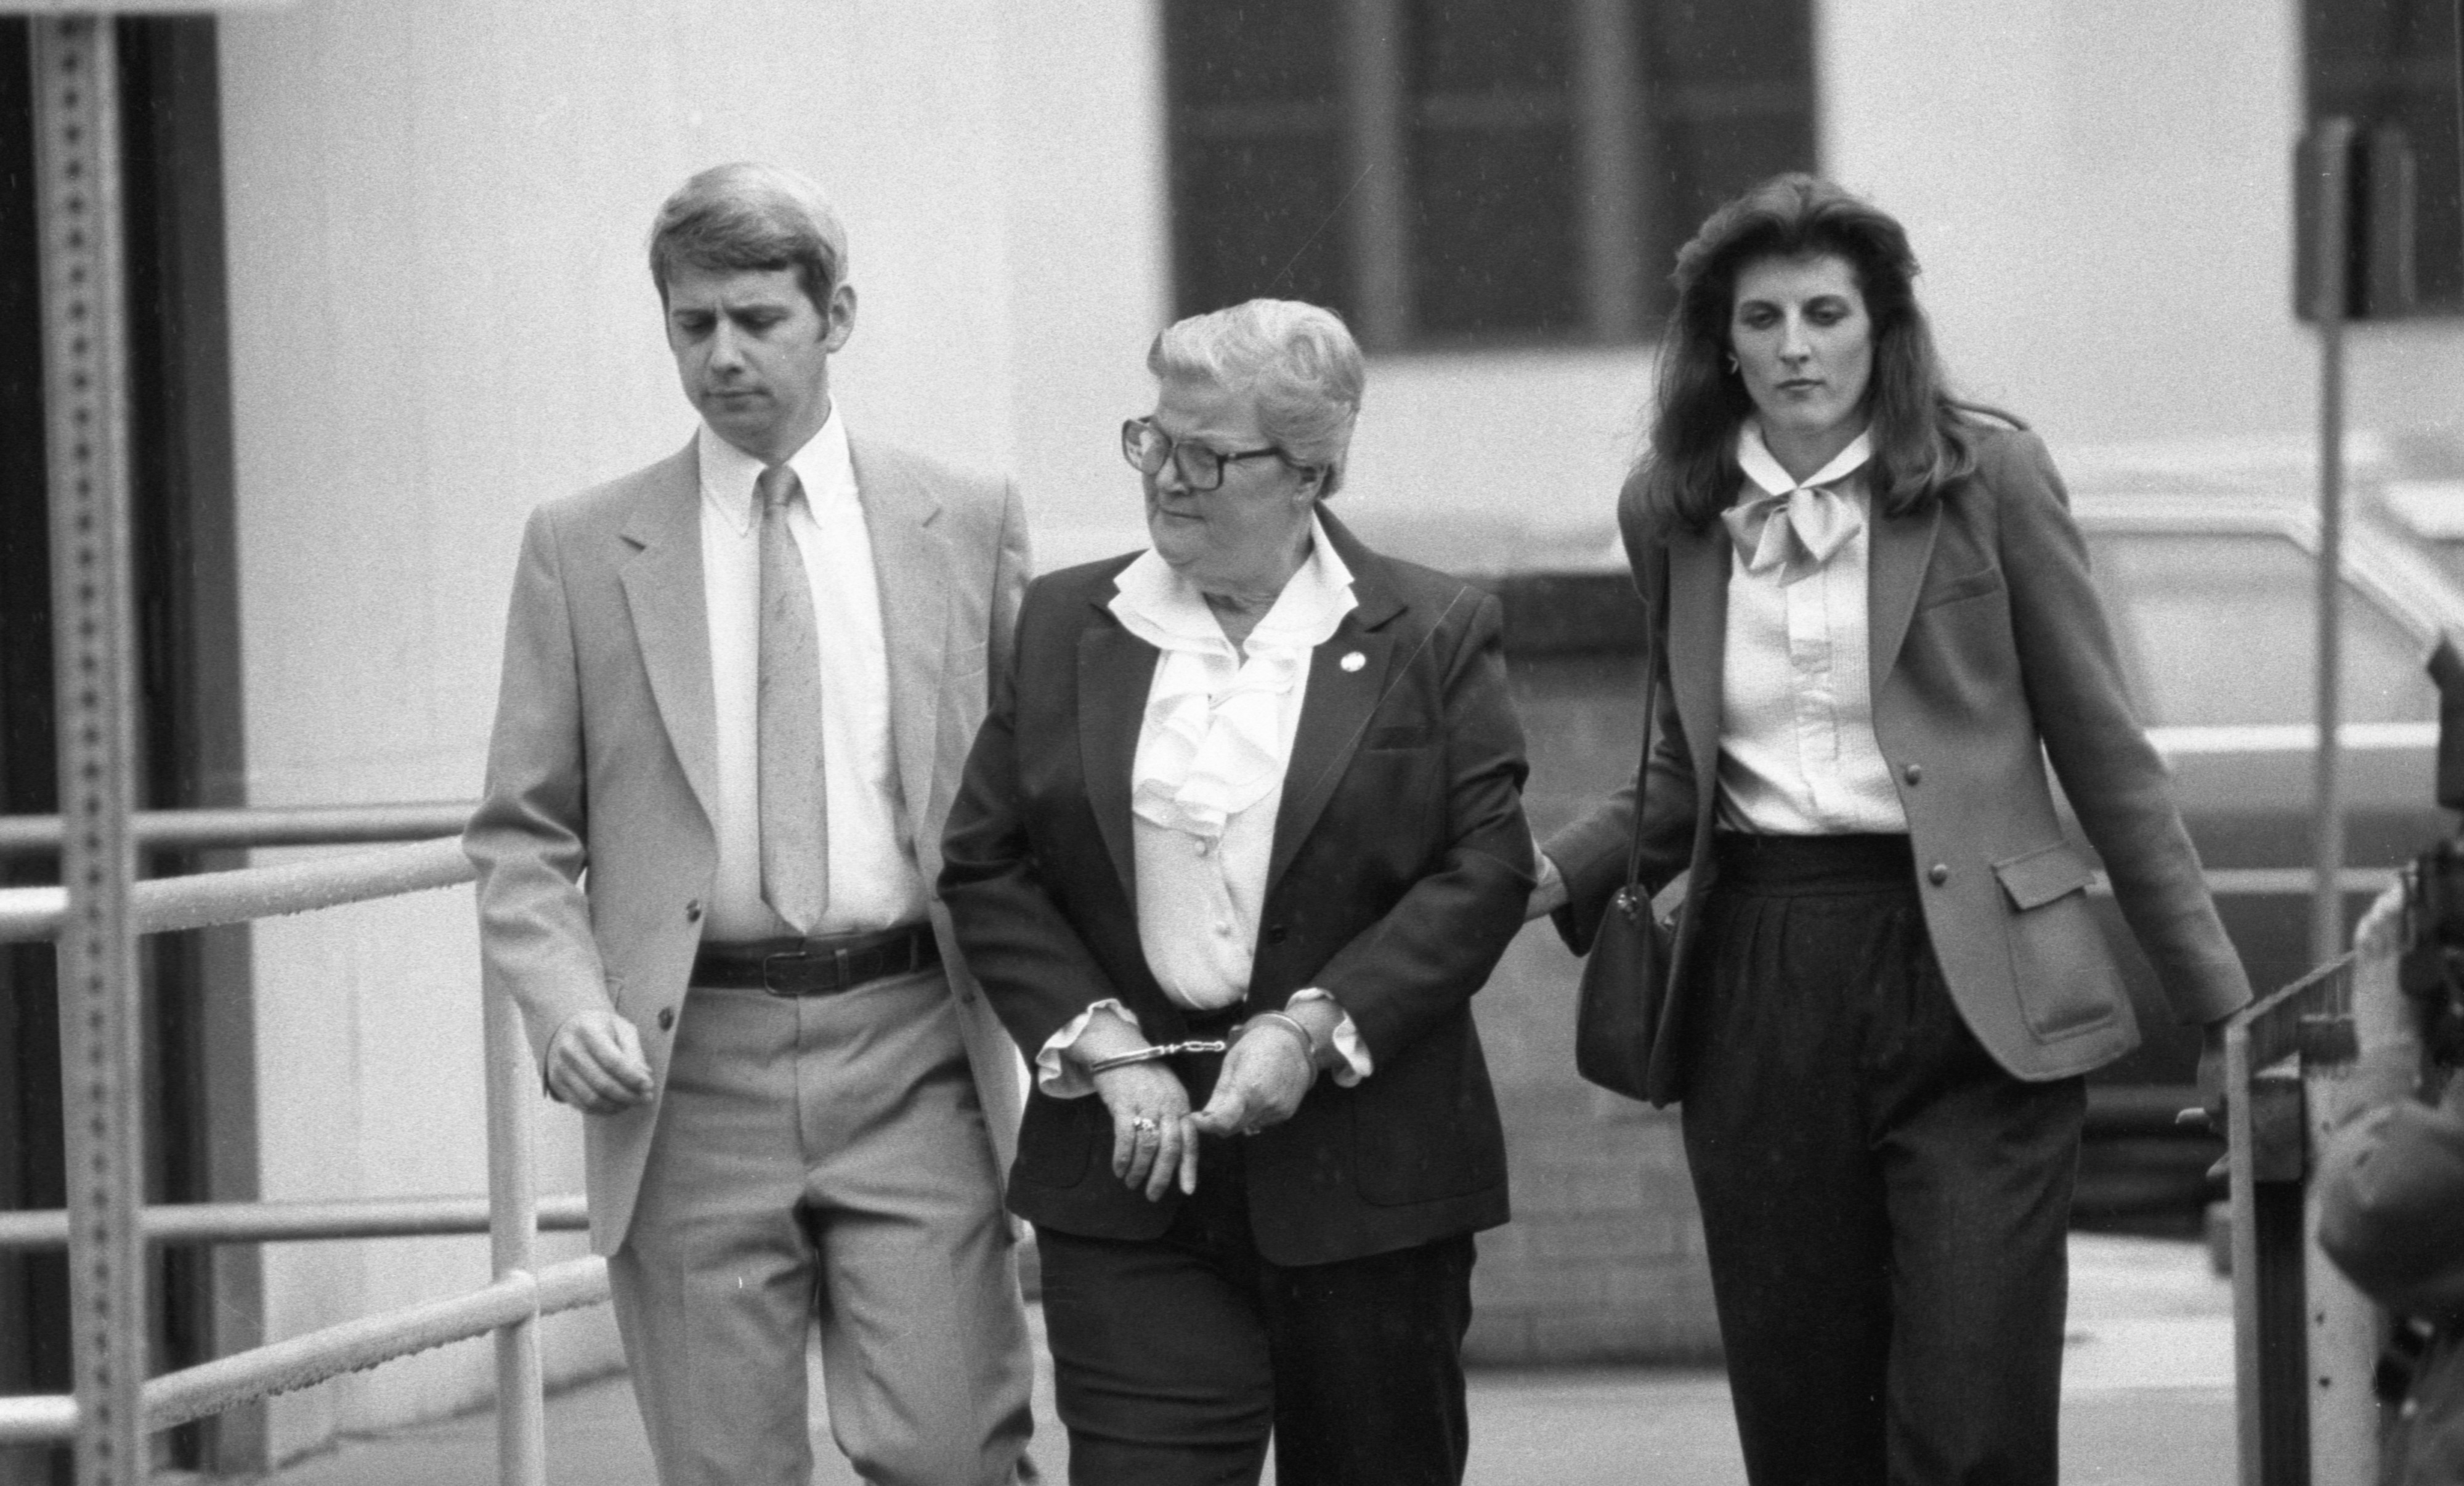 FBI Agents Lead Margaretha Kozminski Away From Washtenaw County Courthouse, November 1983 image